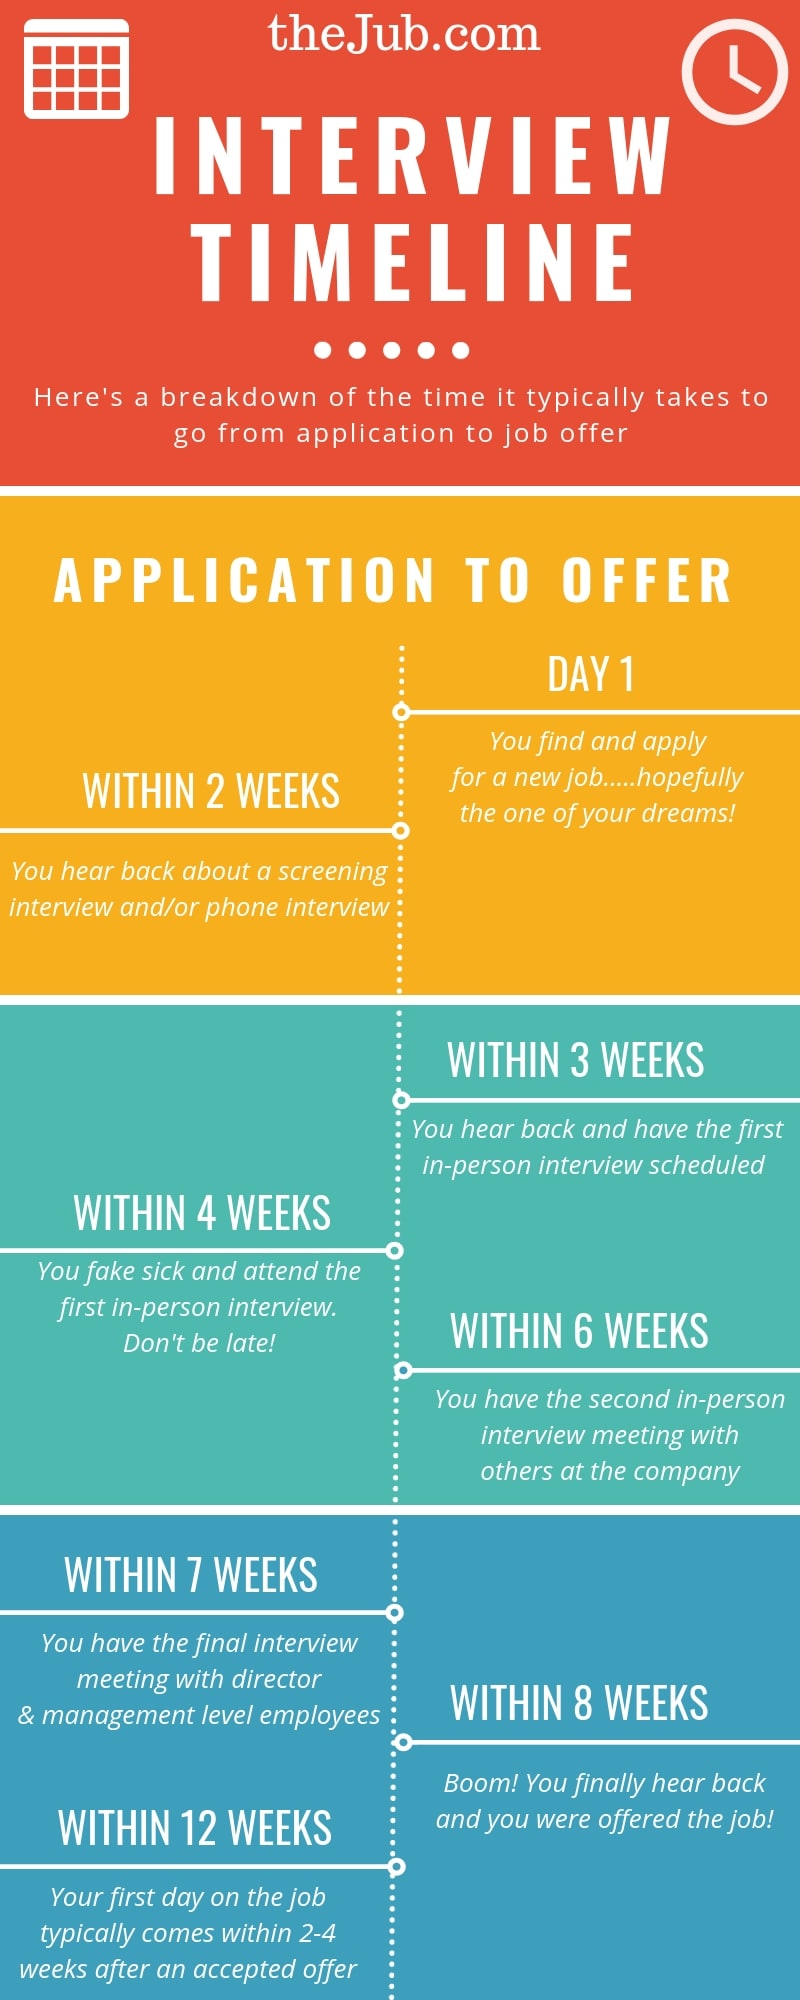 job interview timeline  average time between interview and job offer